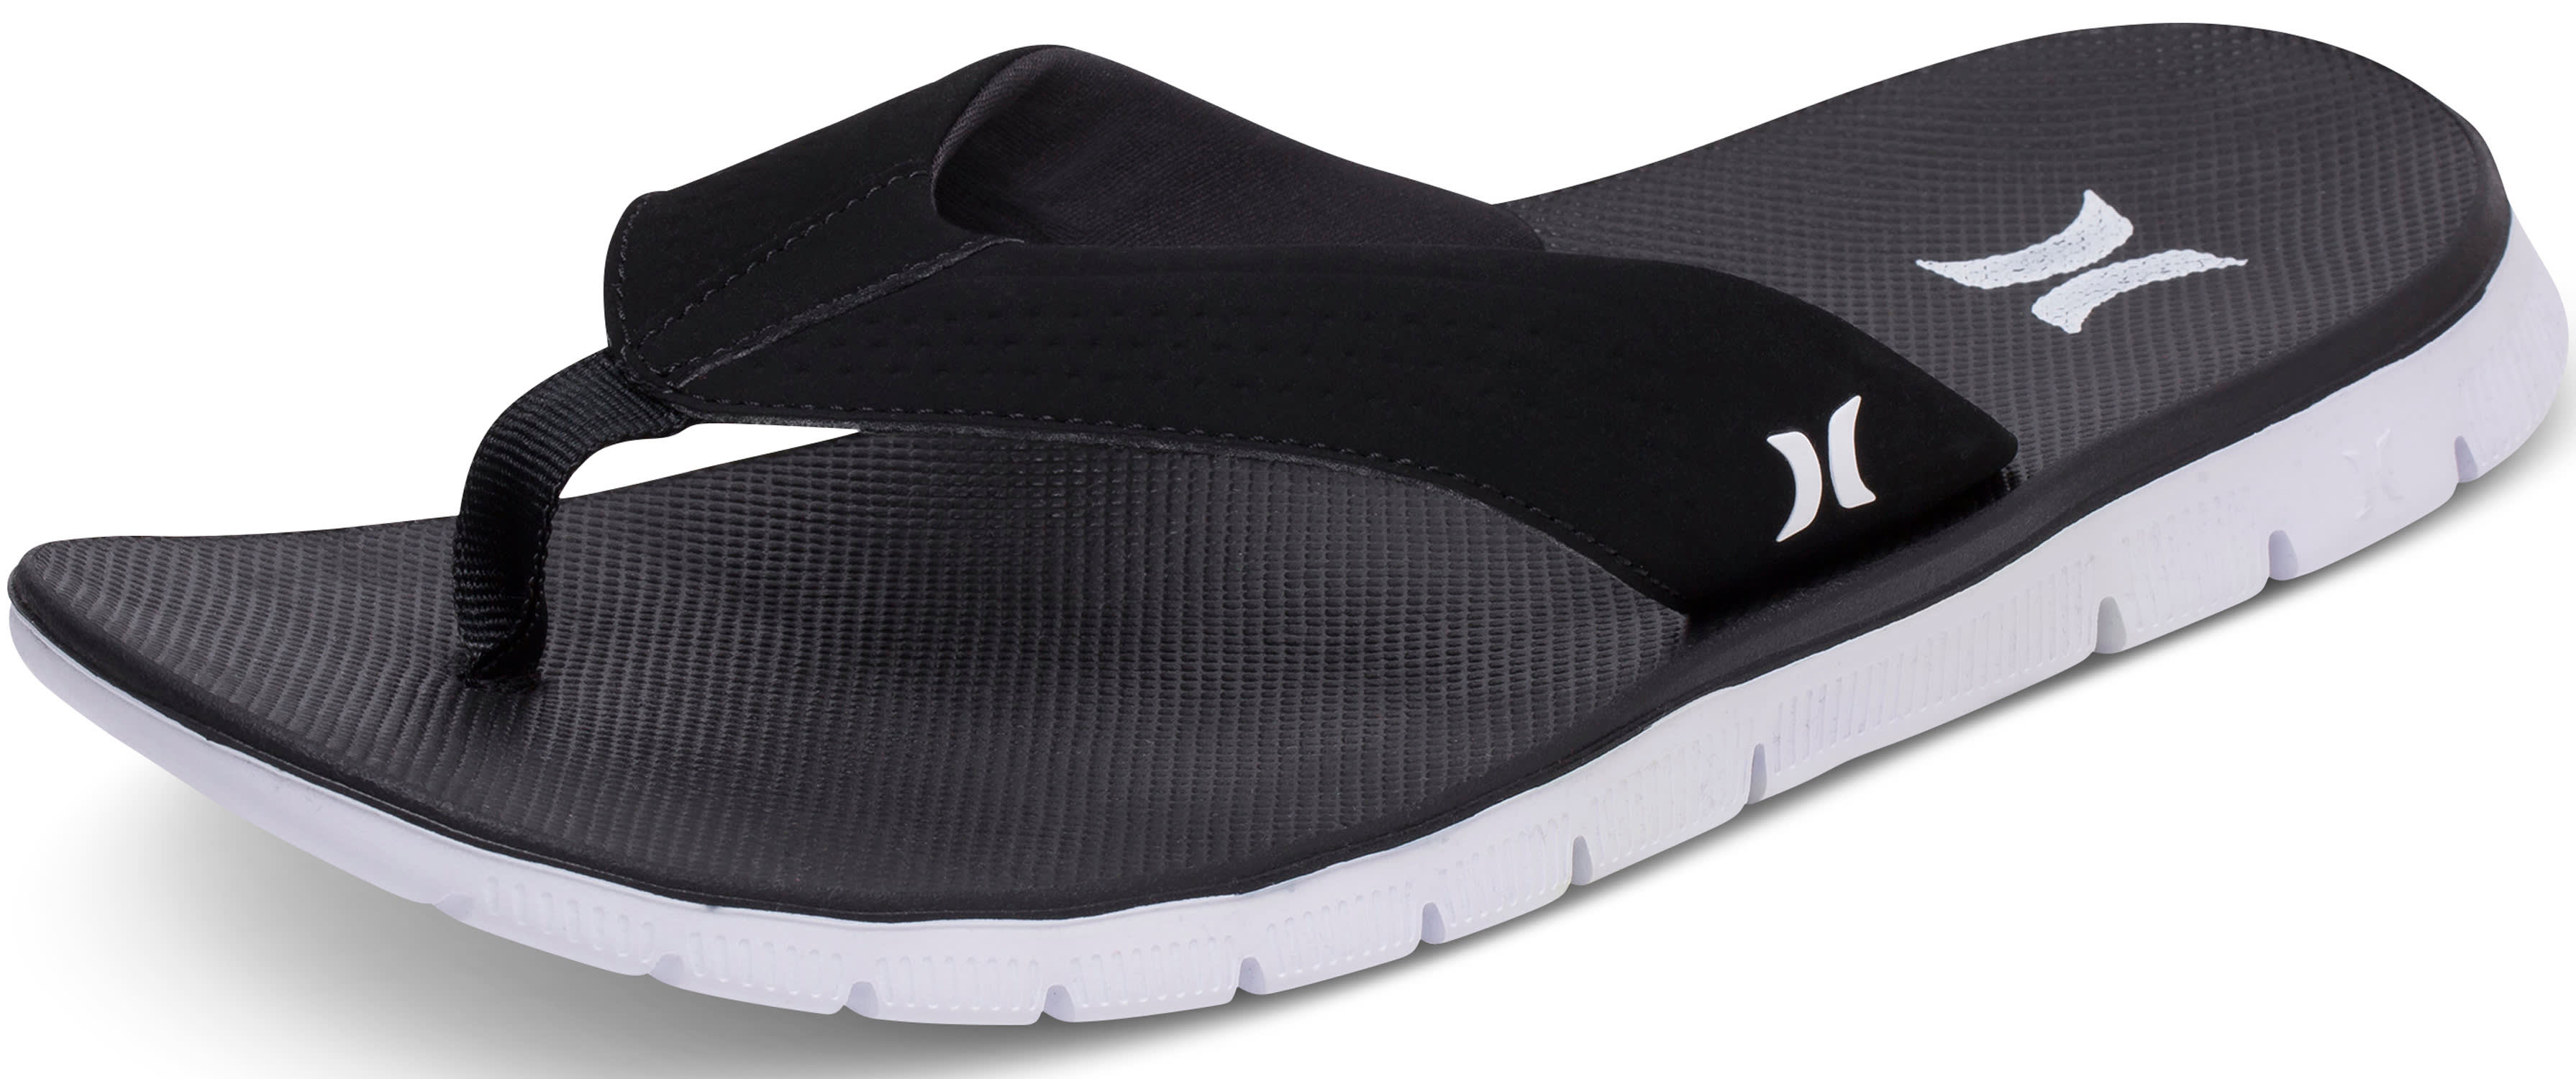 Hurley Fusion Sandals